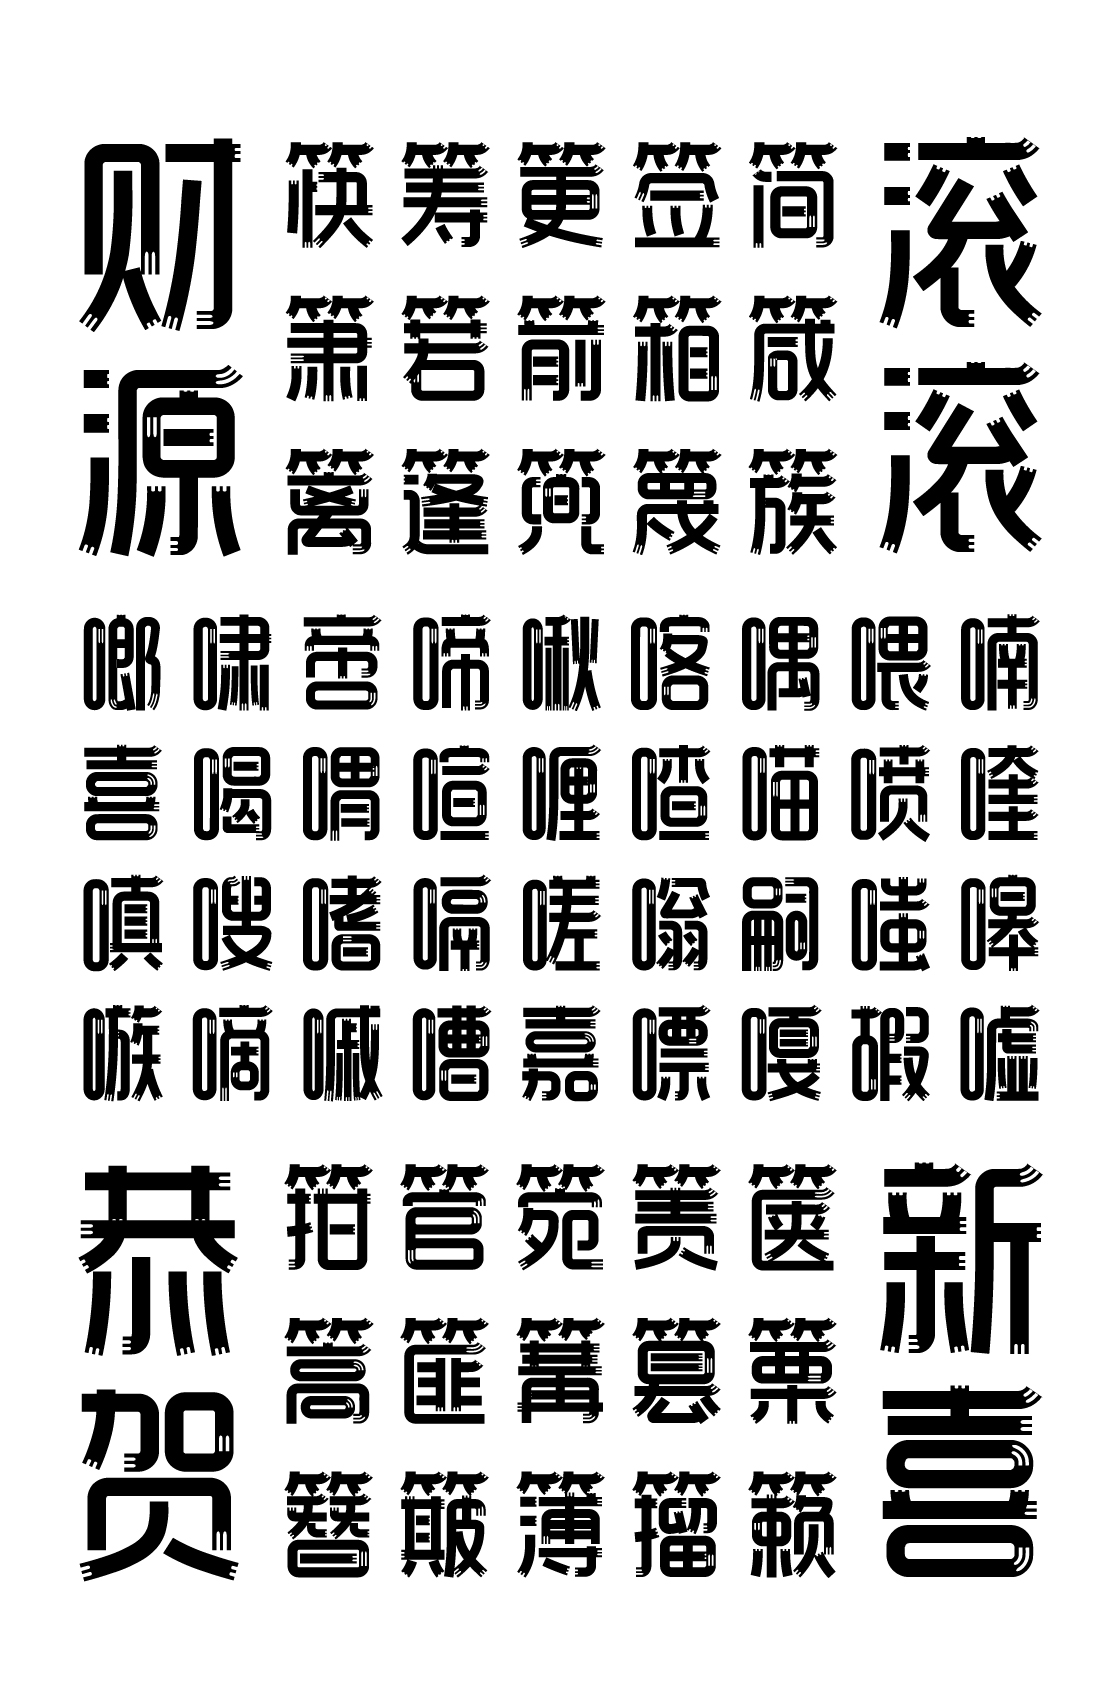 20P Collection of the latest Chinese font design schemes in 2021 #.130